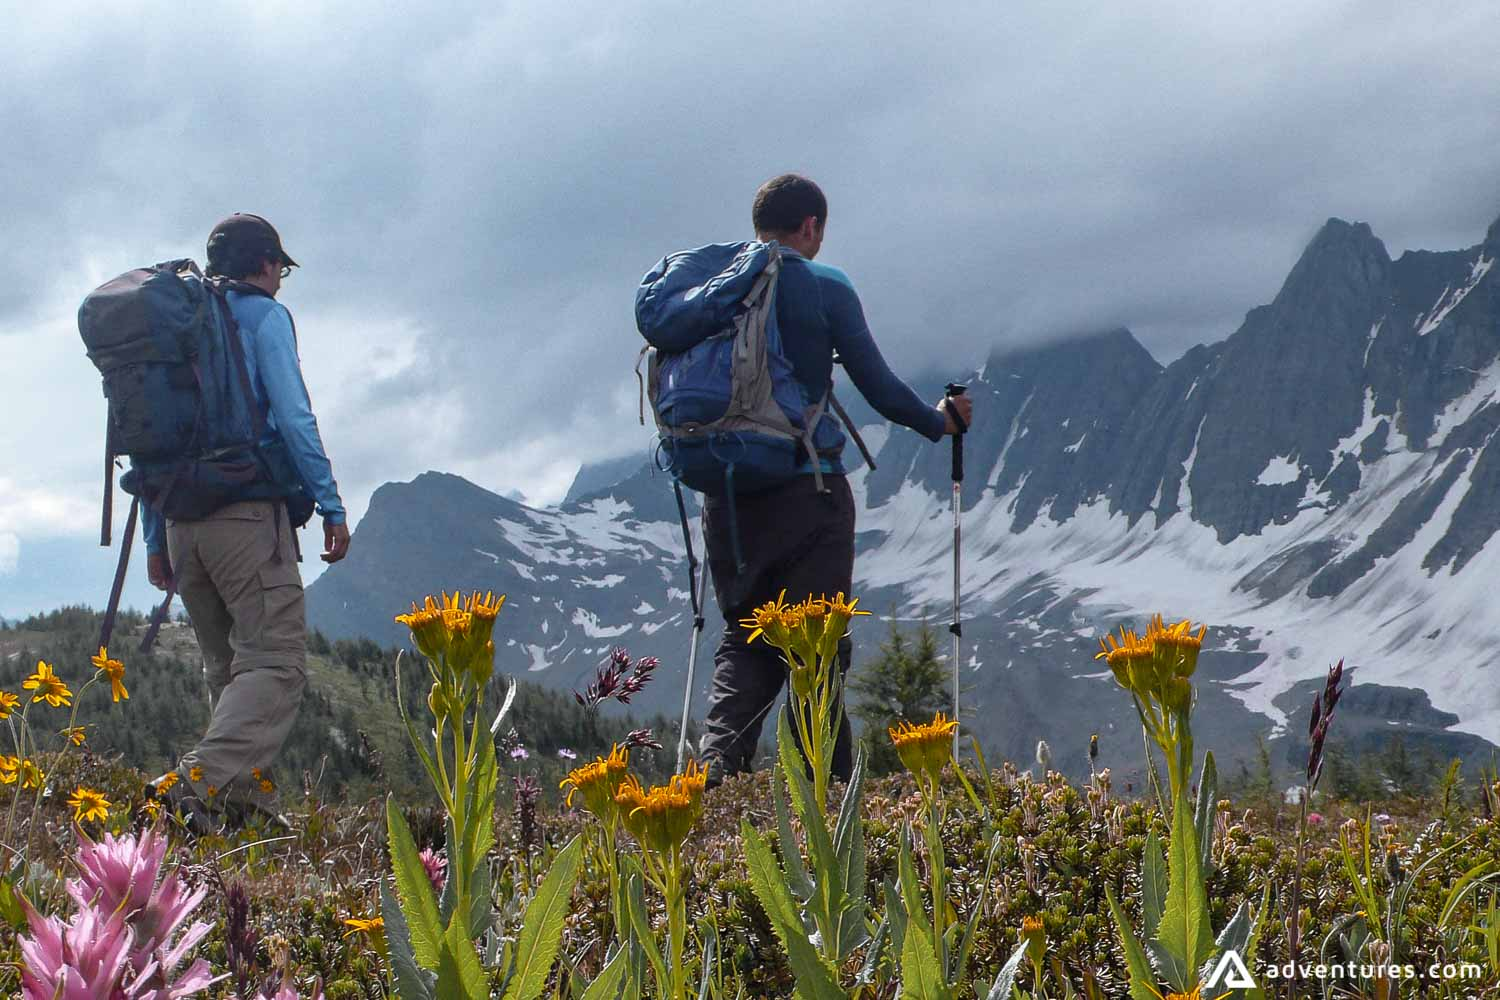 Men on a backpacking tour